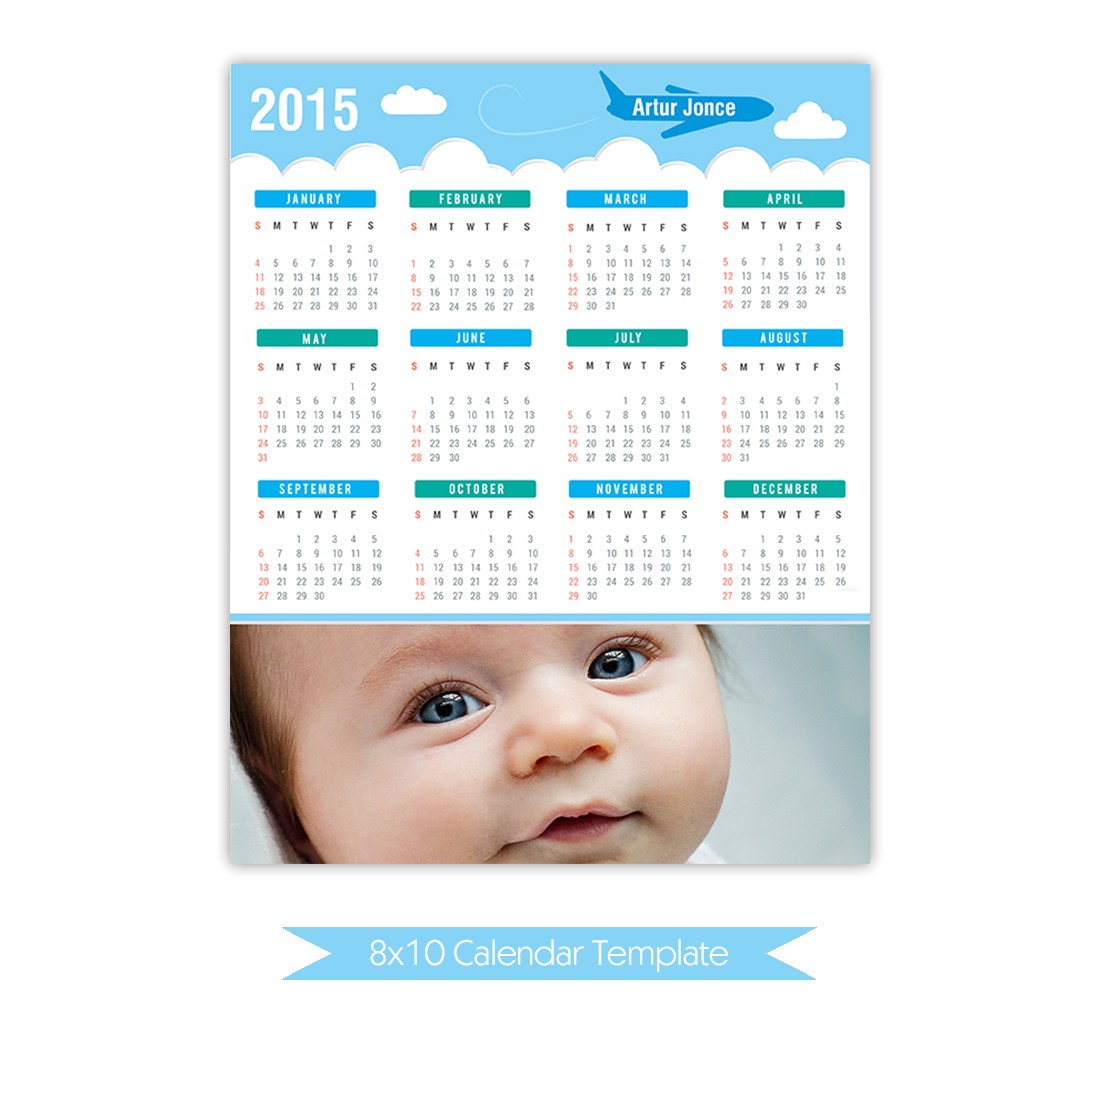 instant download 8x10 calendar template 2015 di 0033